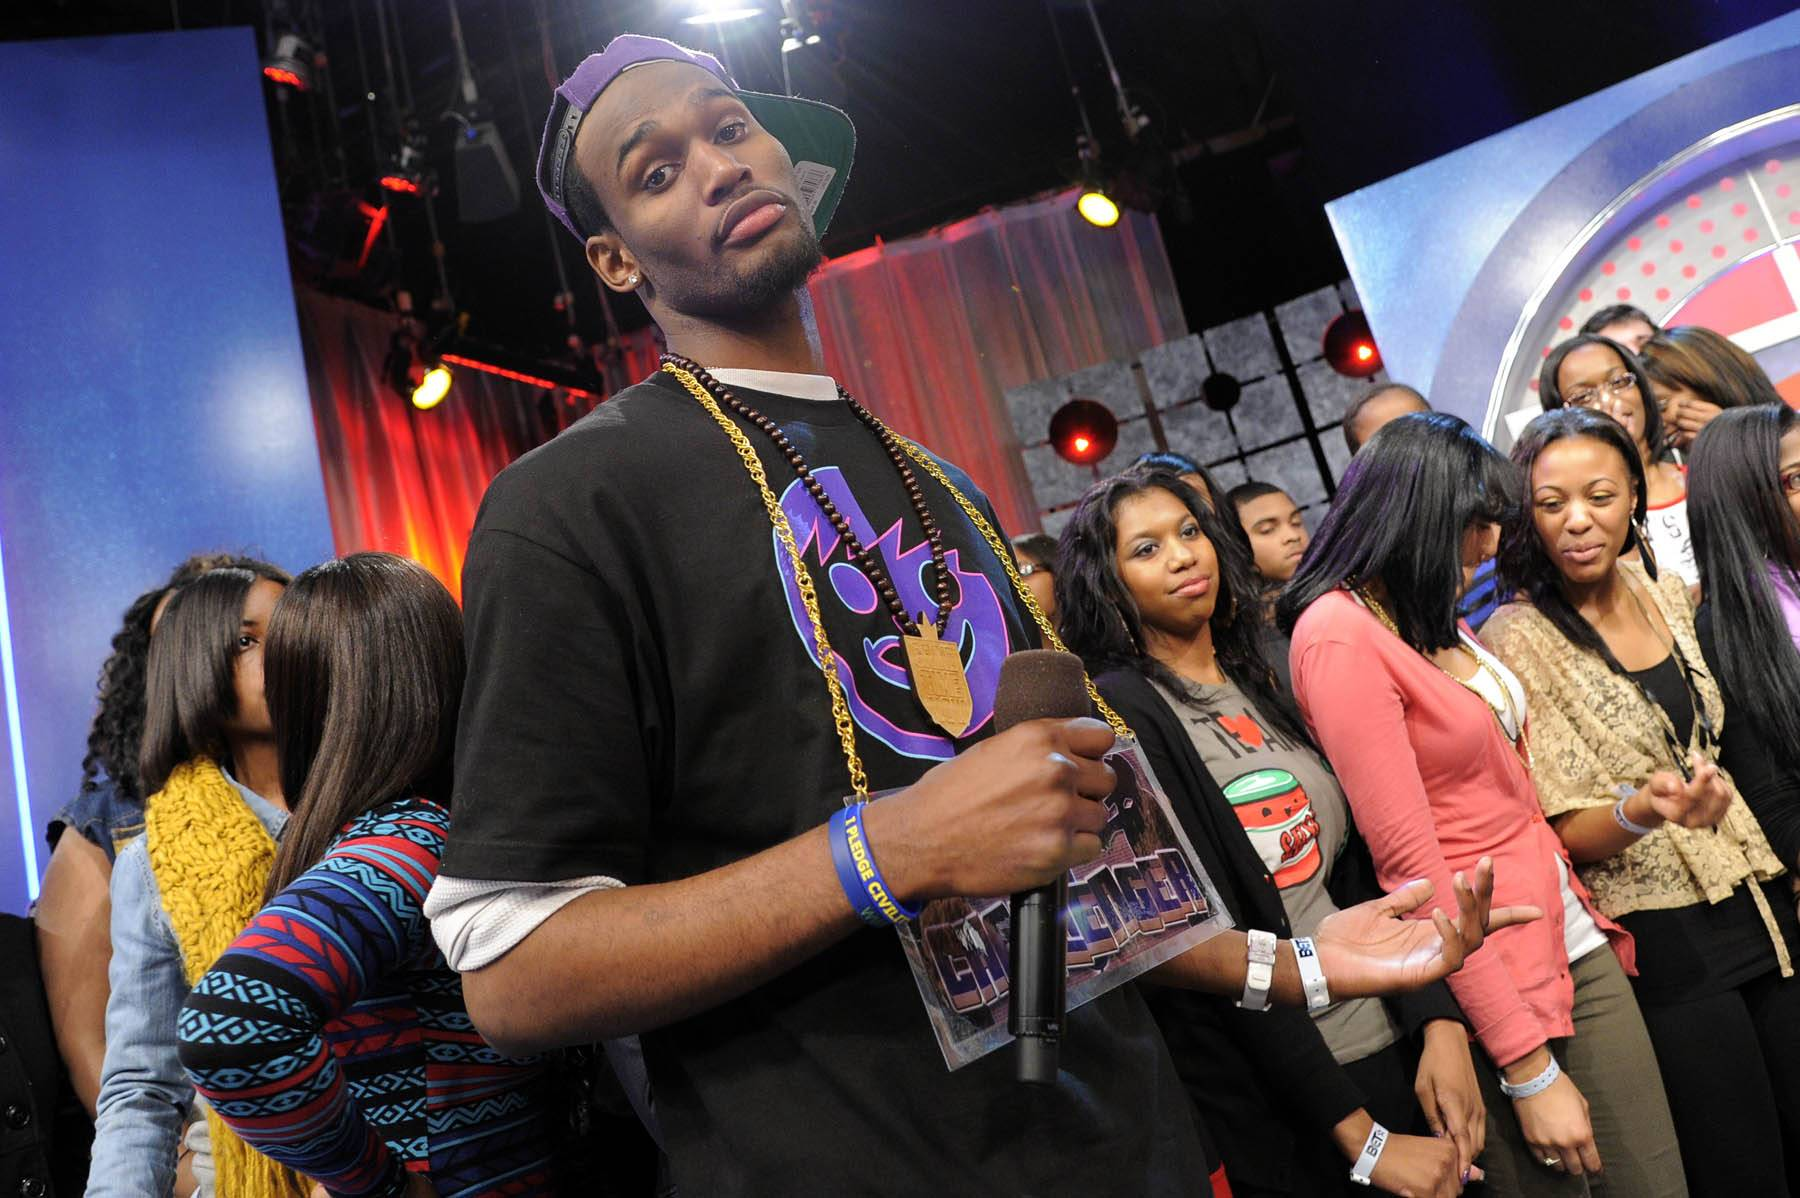 It's My Turn - Freestyle Friday challenger Rio the Raptor, who hails from Columbia, MD, at 106 & Park, January 27, 2012. (Photo: John Ricard / BET)